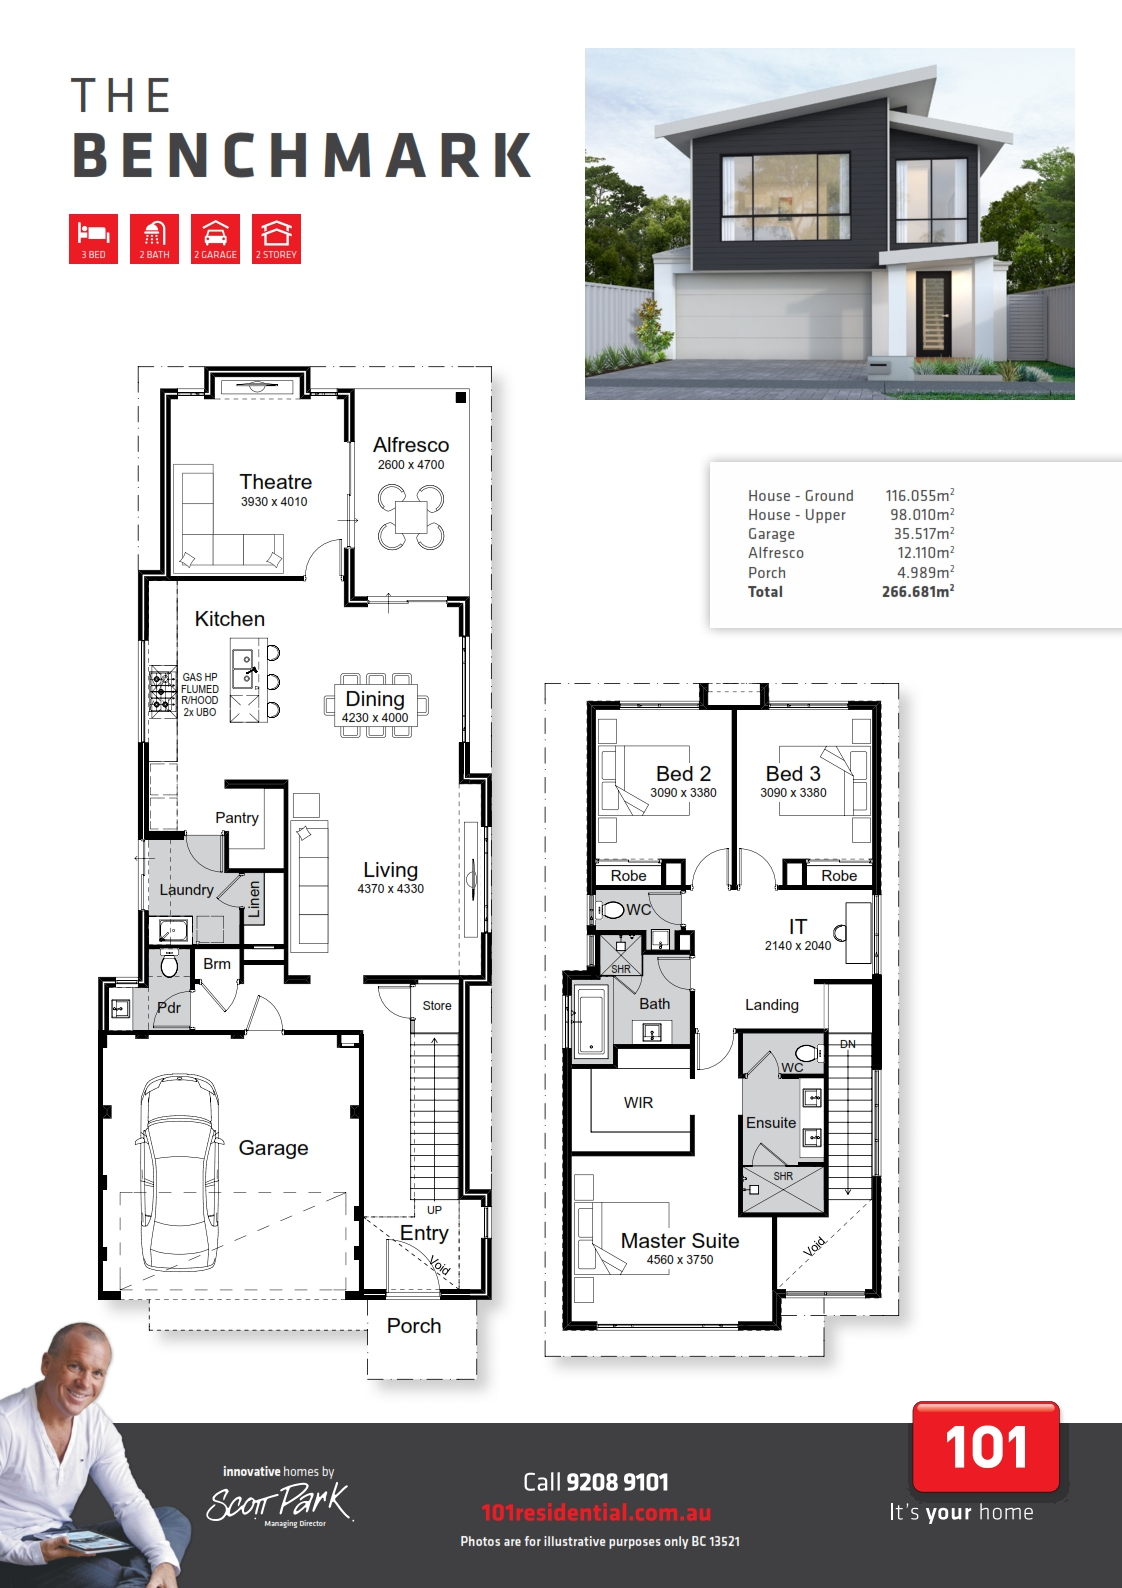 101 A3 Floor Plan - Benchmark WEB_001